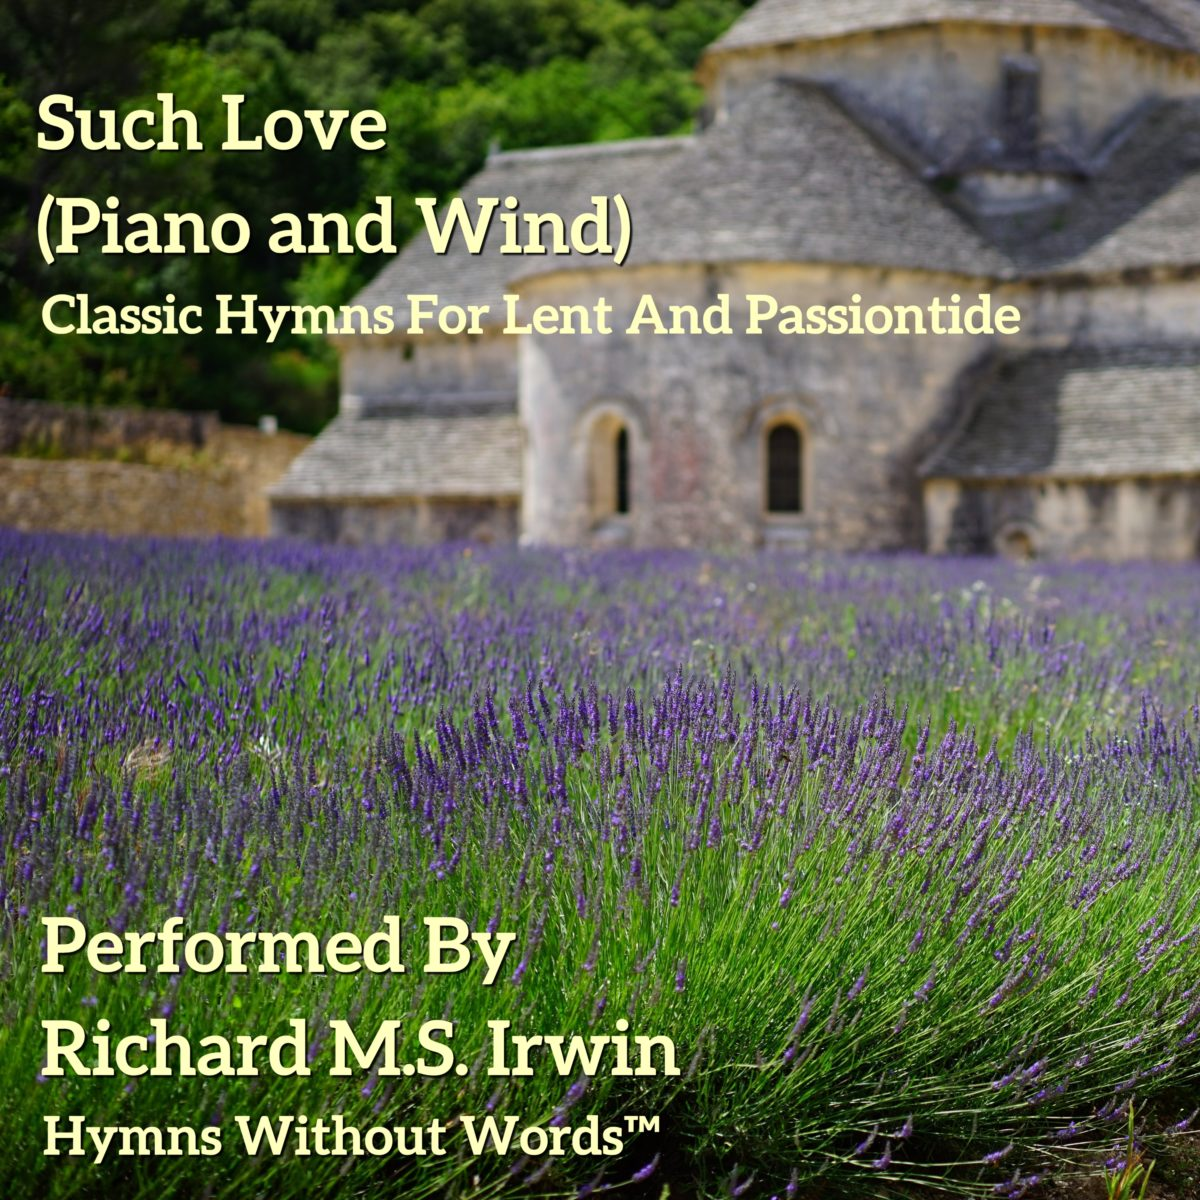 Such Love (Piano and Woodwind, 3 Verses)